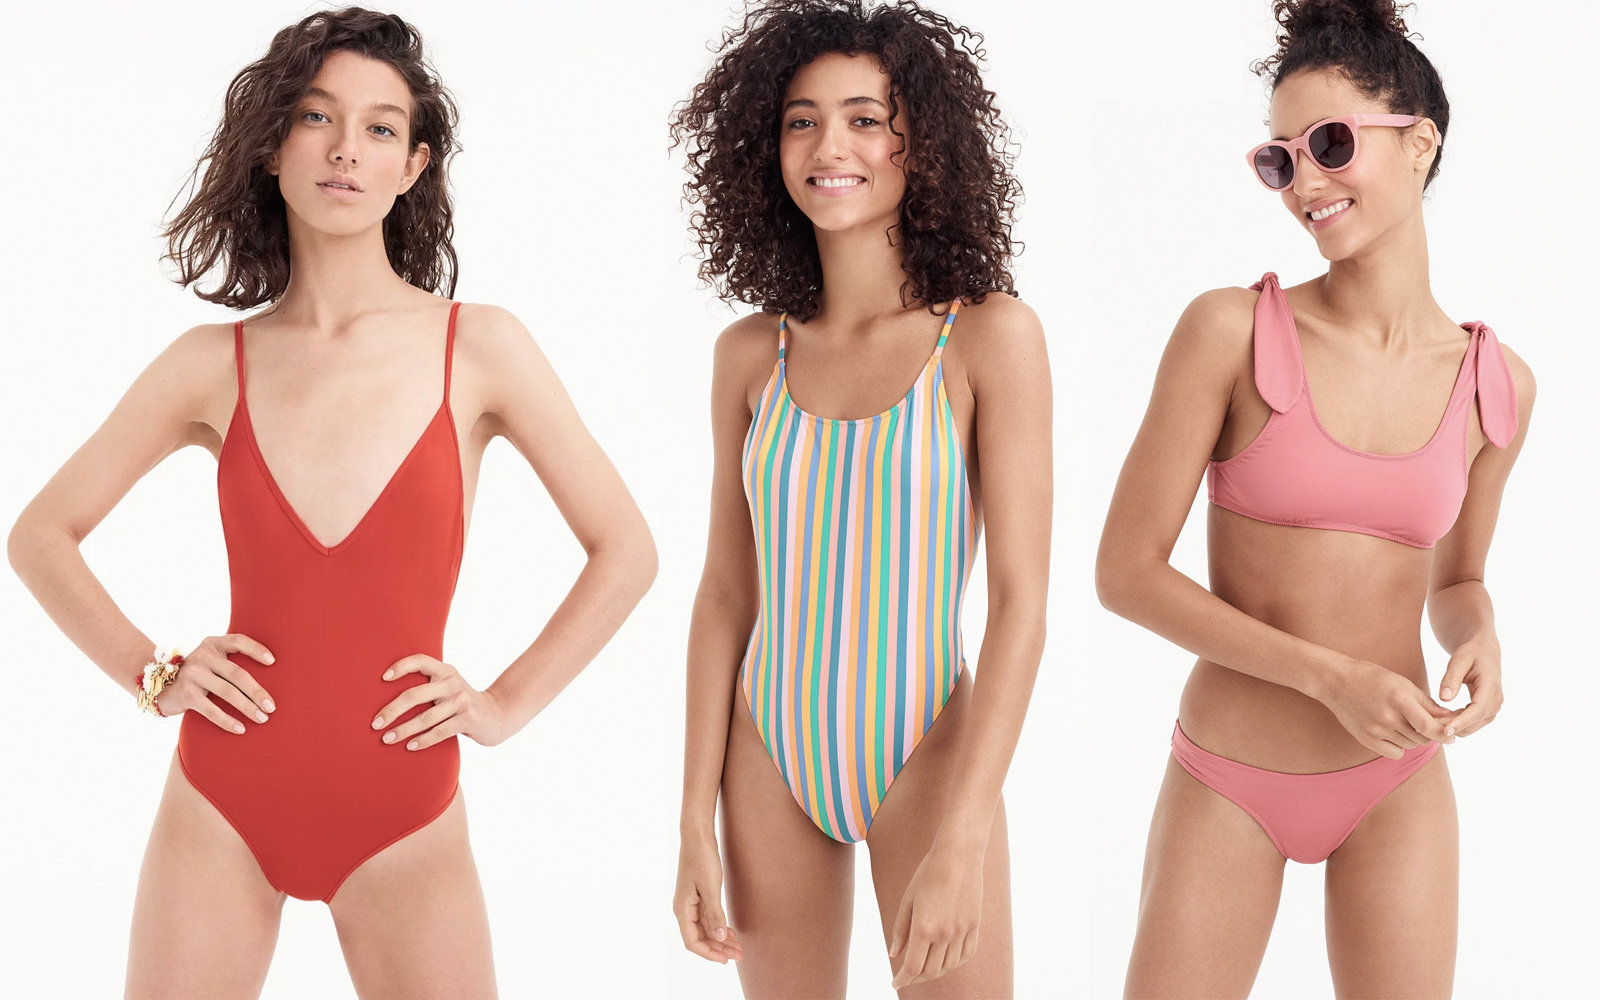 J. Crew Launches Playa Swimsuit Collection